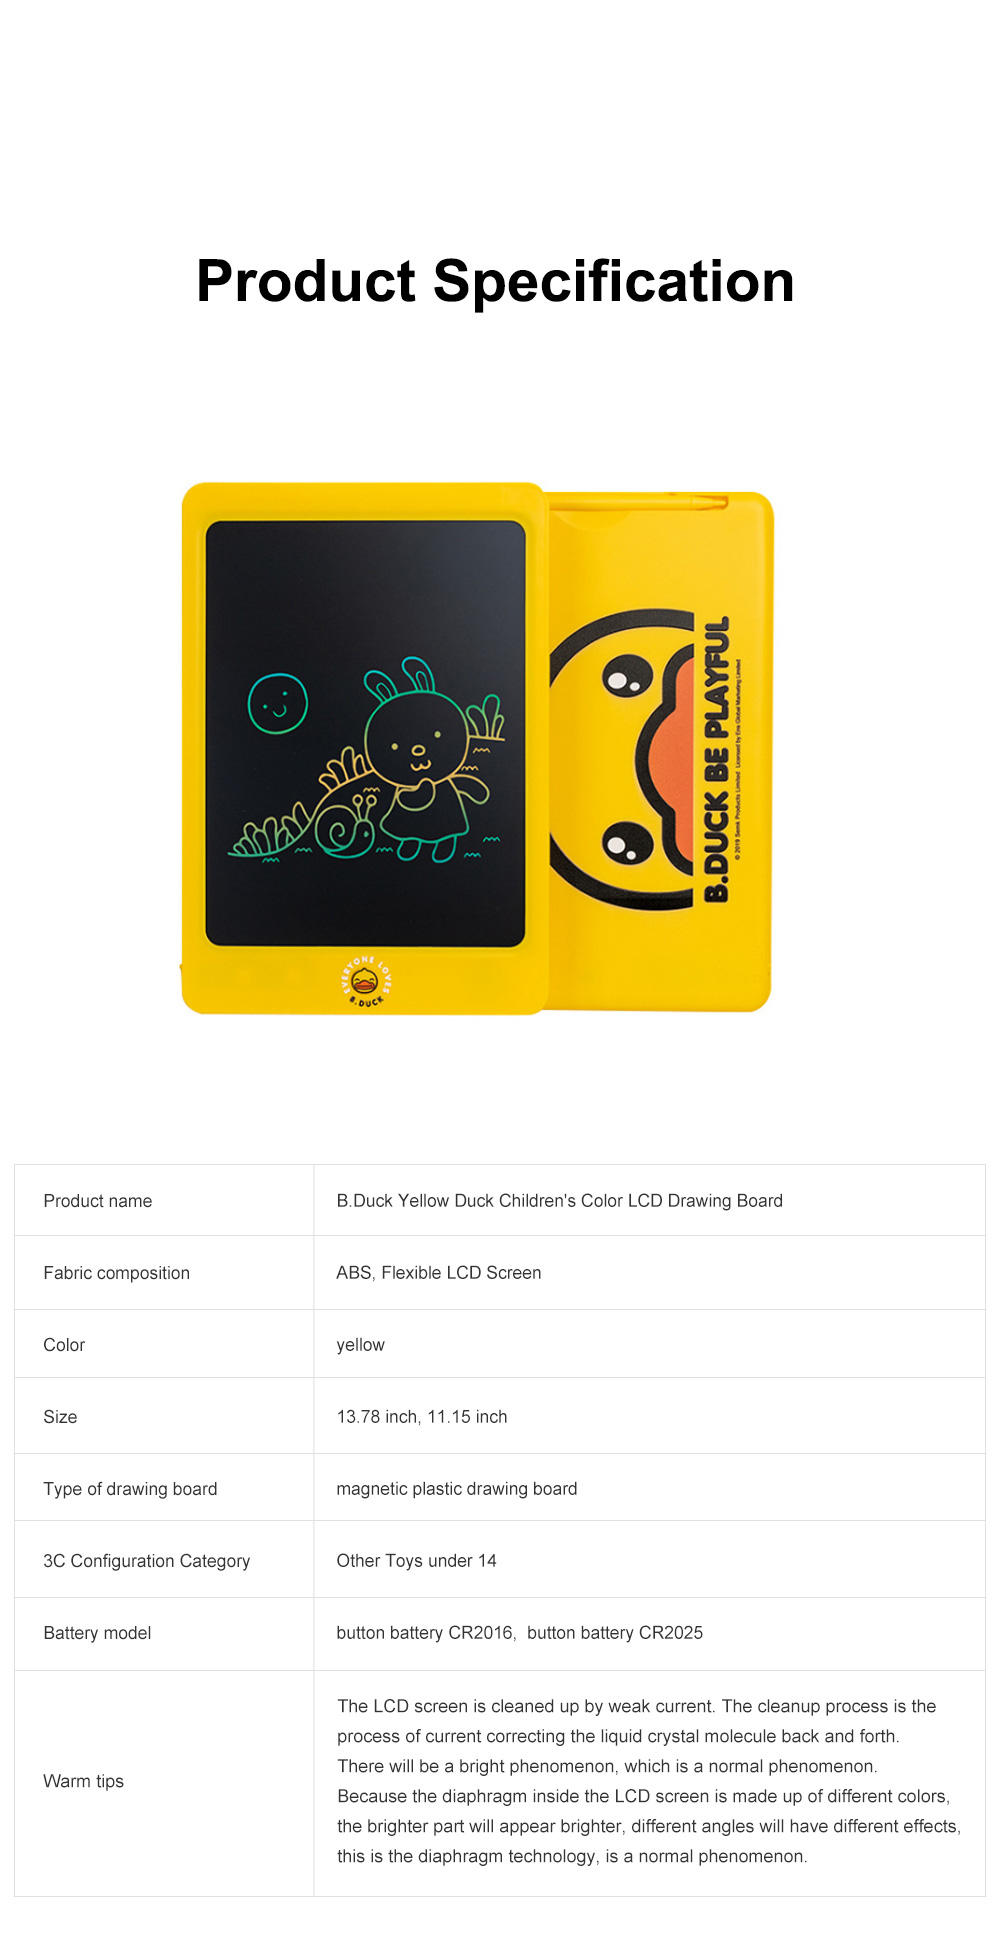 Little Yellow Duck Children's Color LCD Drawing Board 10.5 inch 8.5 inch Handwriting Board Graffiti Drawing Board Electronic Blackboard Writing Board 7